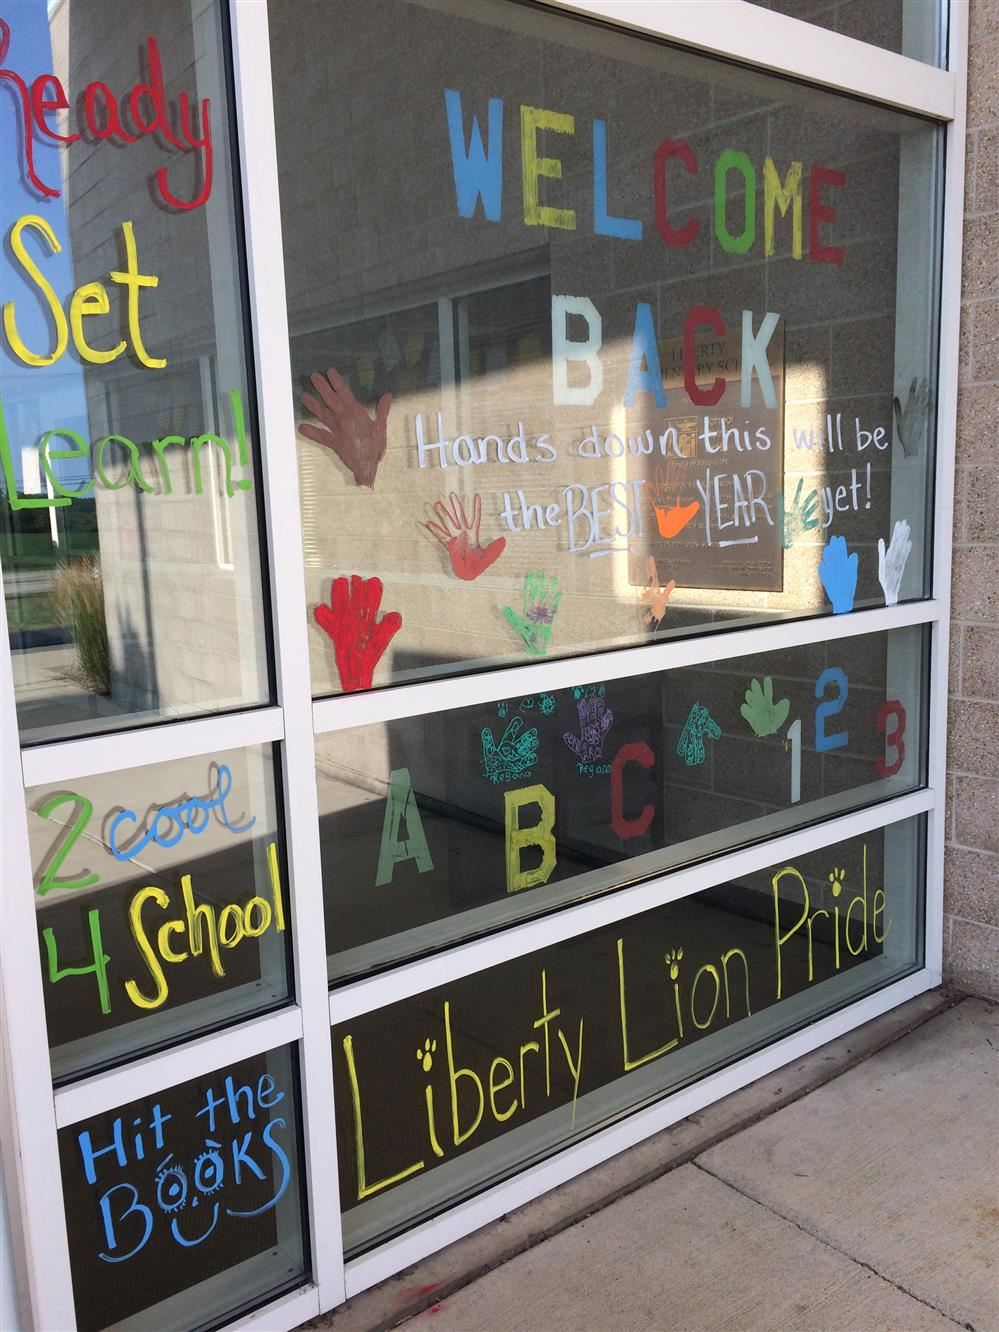 School District U-46 Opens Doors on Aug. 14